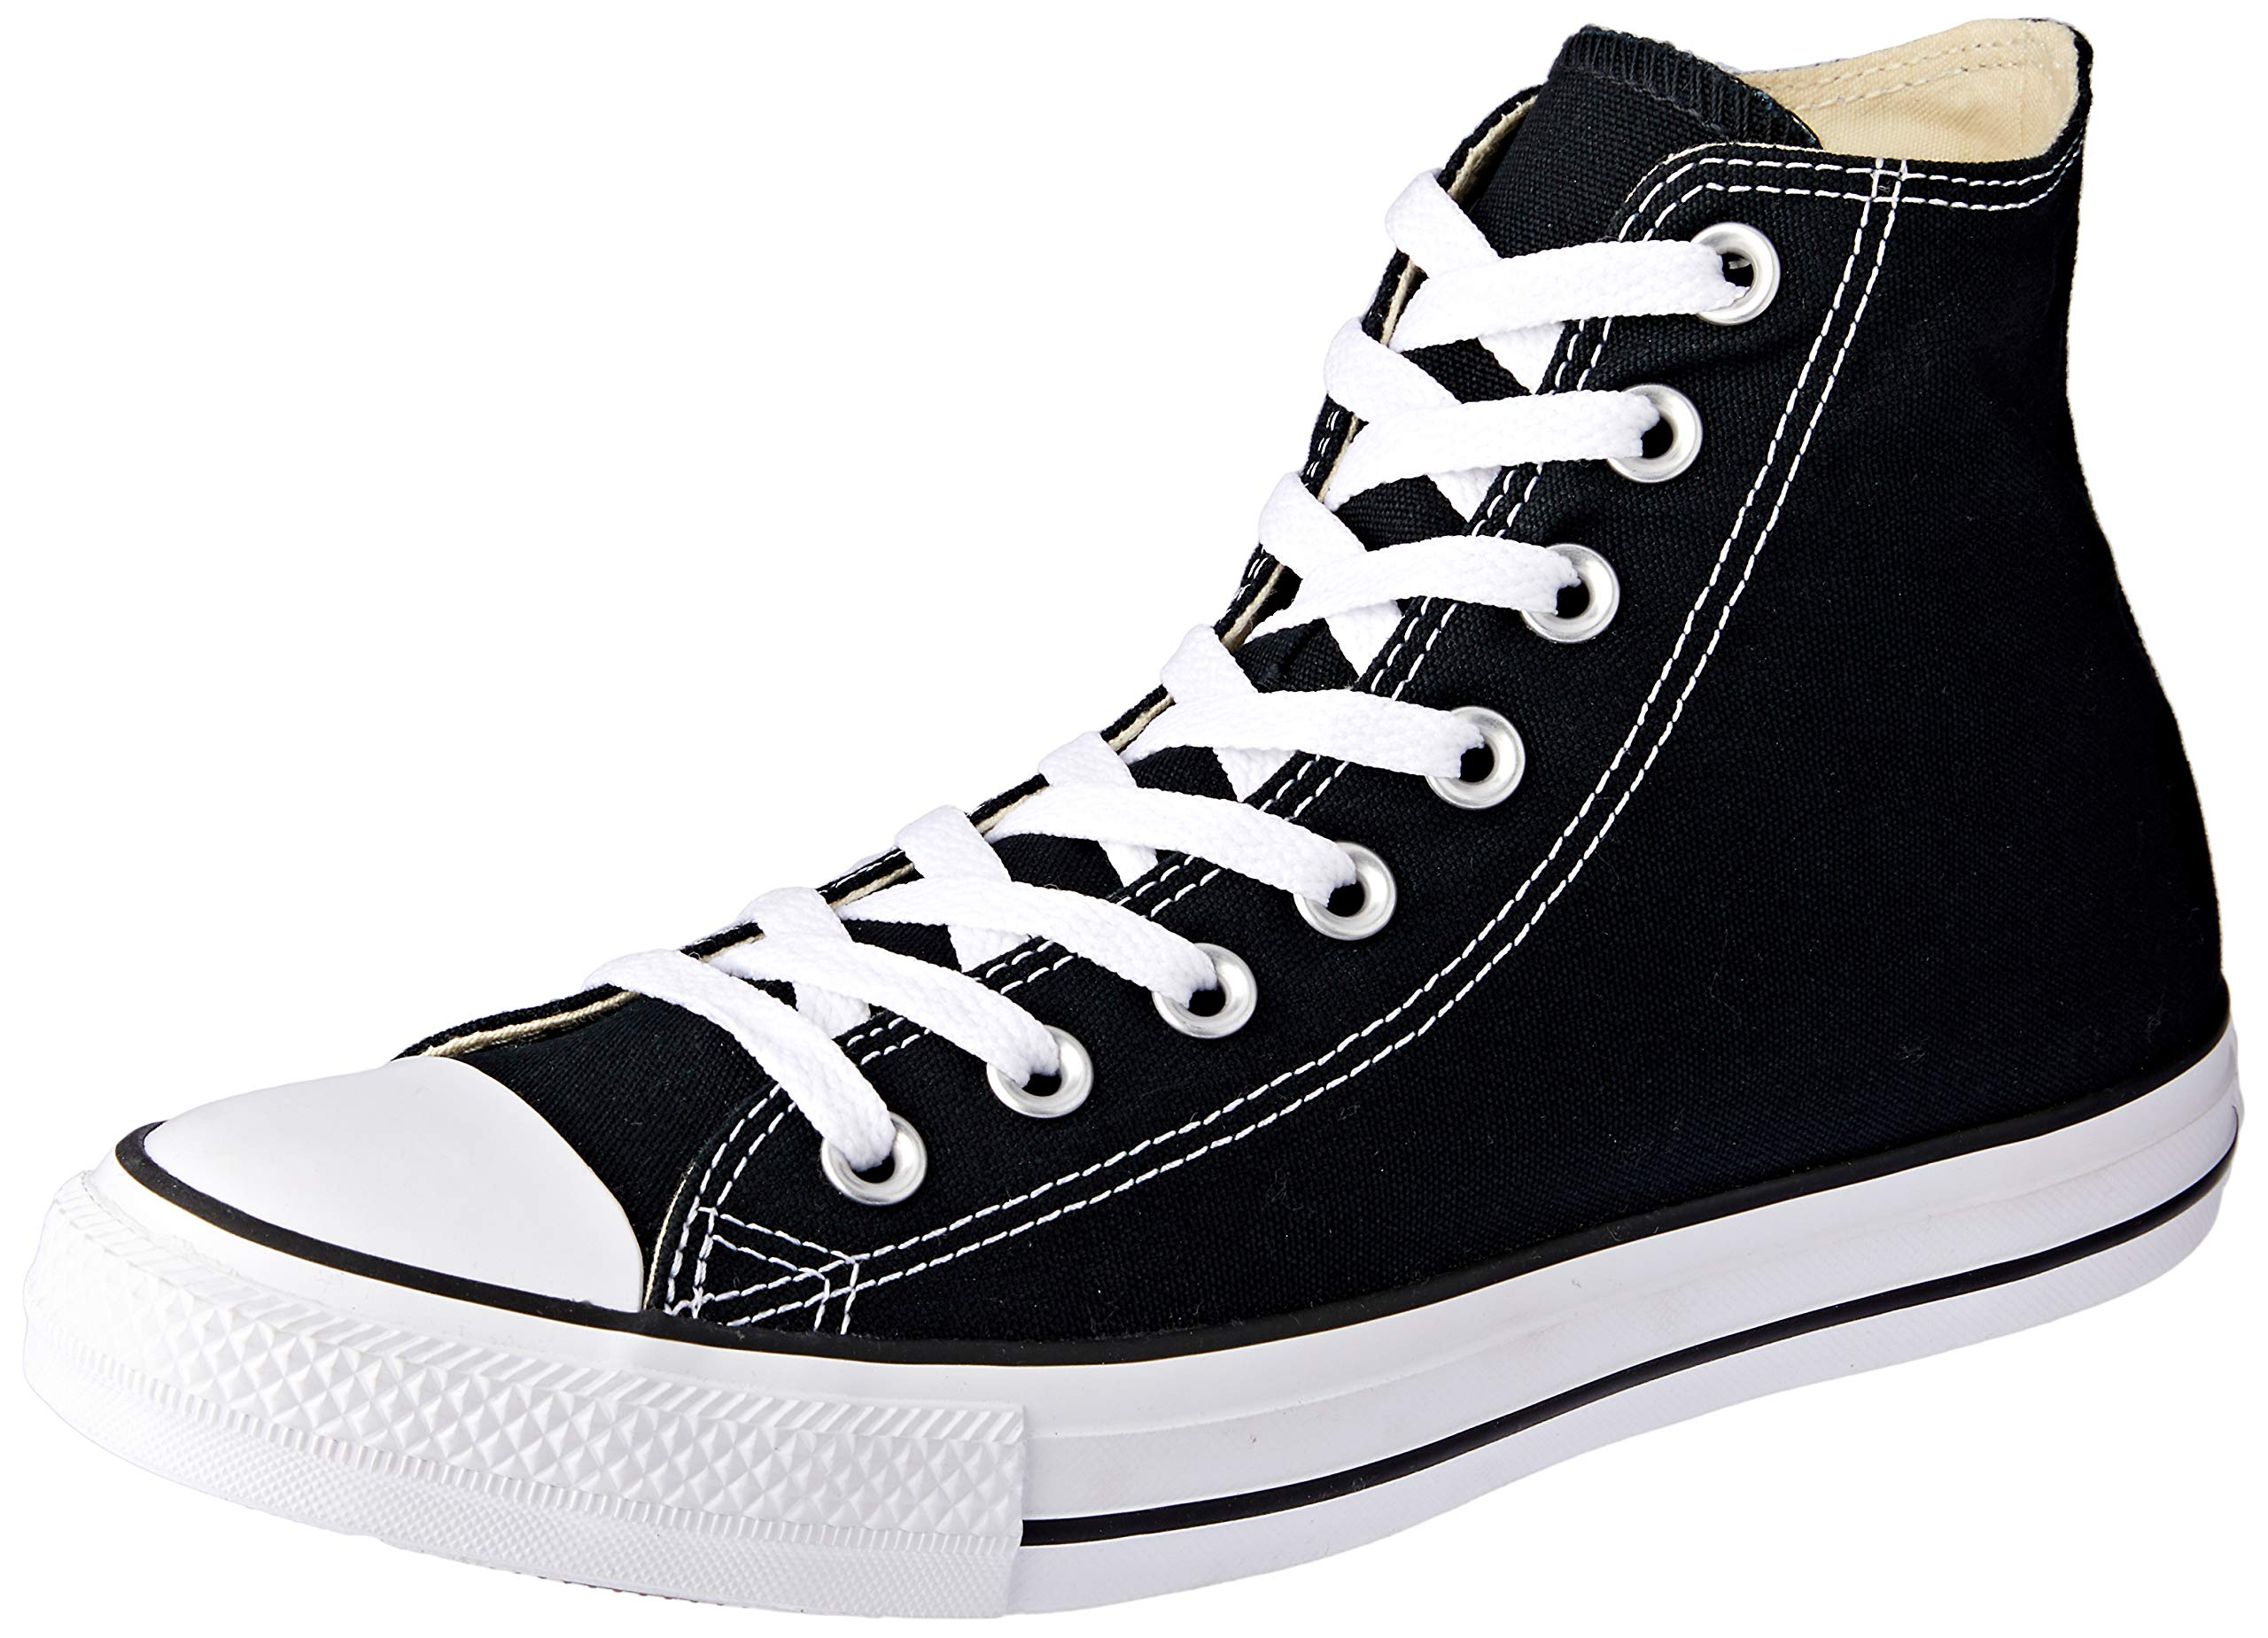 Chuck Taylor All Star Canvas High Top, Black, 9 by Converse